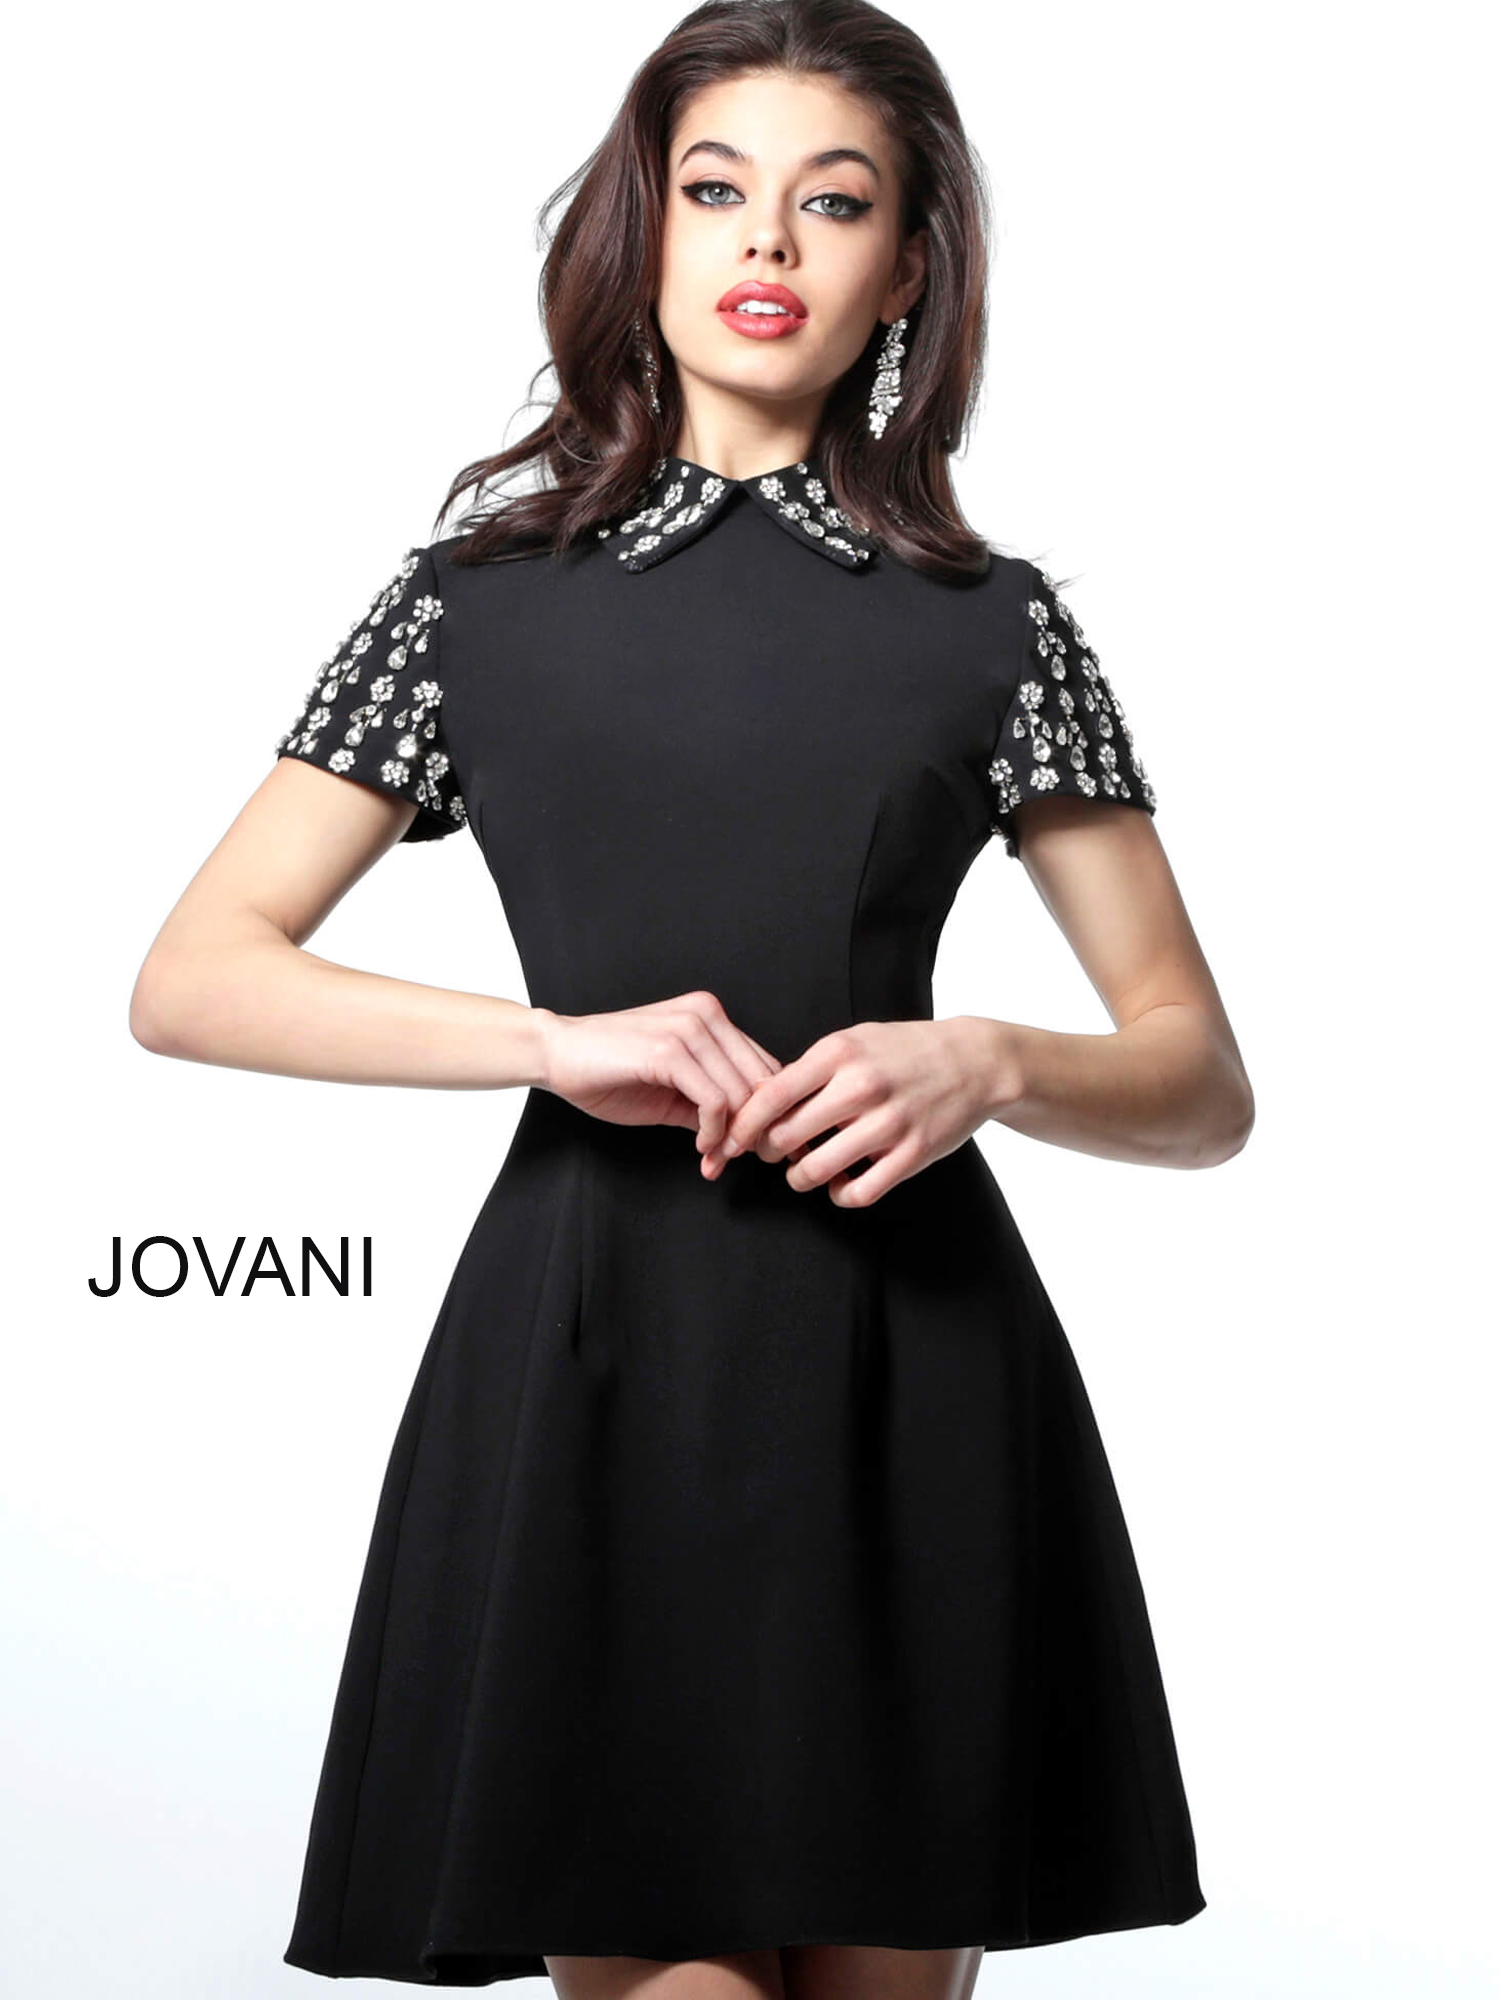 jovani Black Short Embellished Sleeves Cocktail Dress M1697